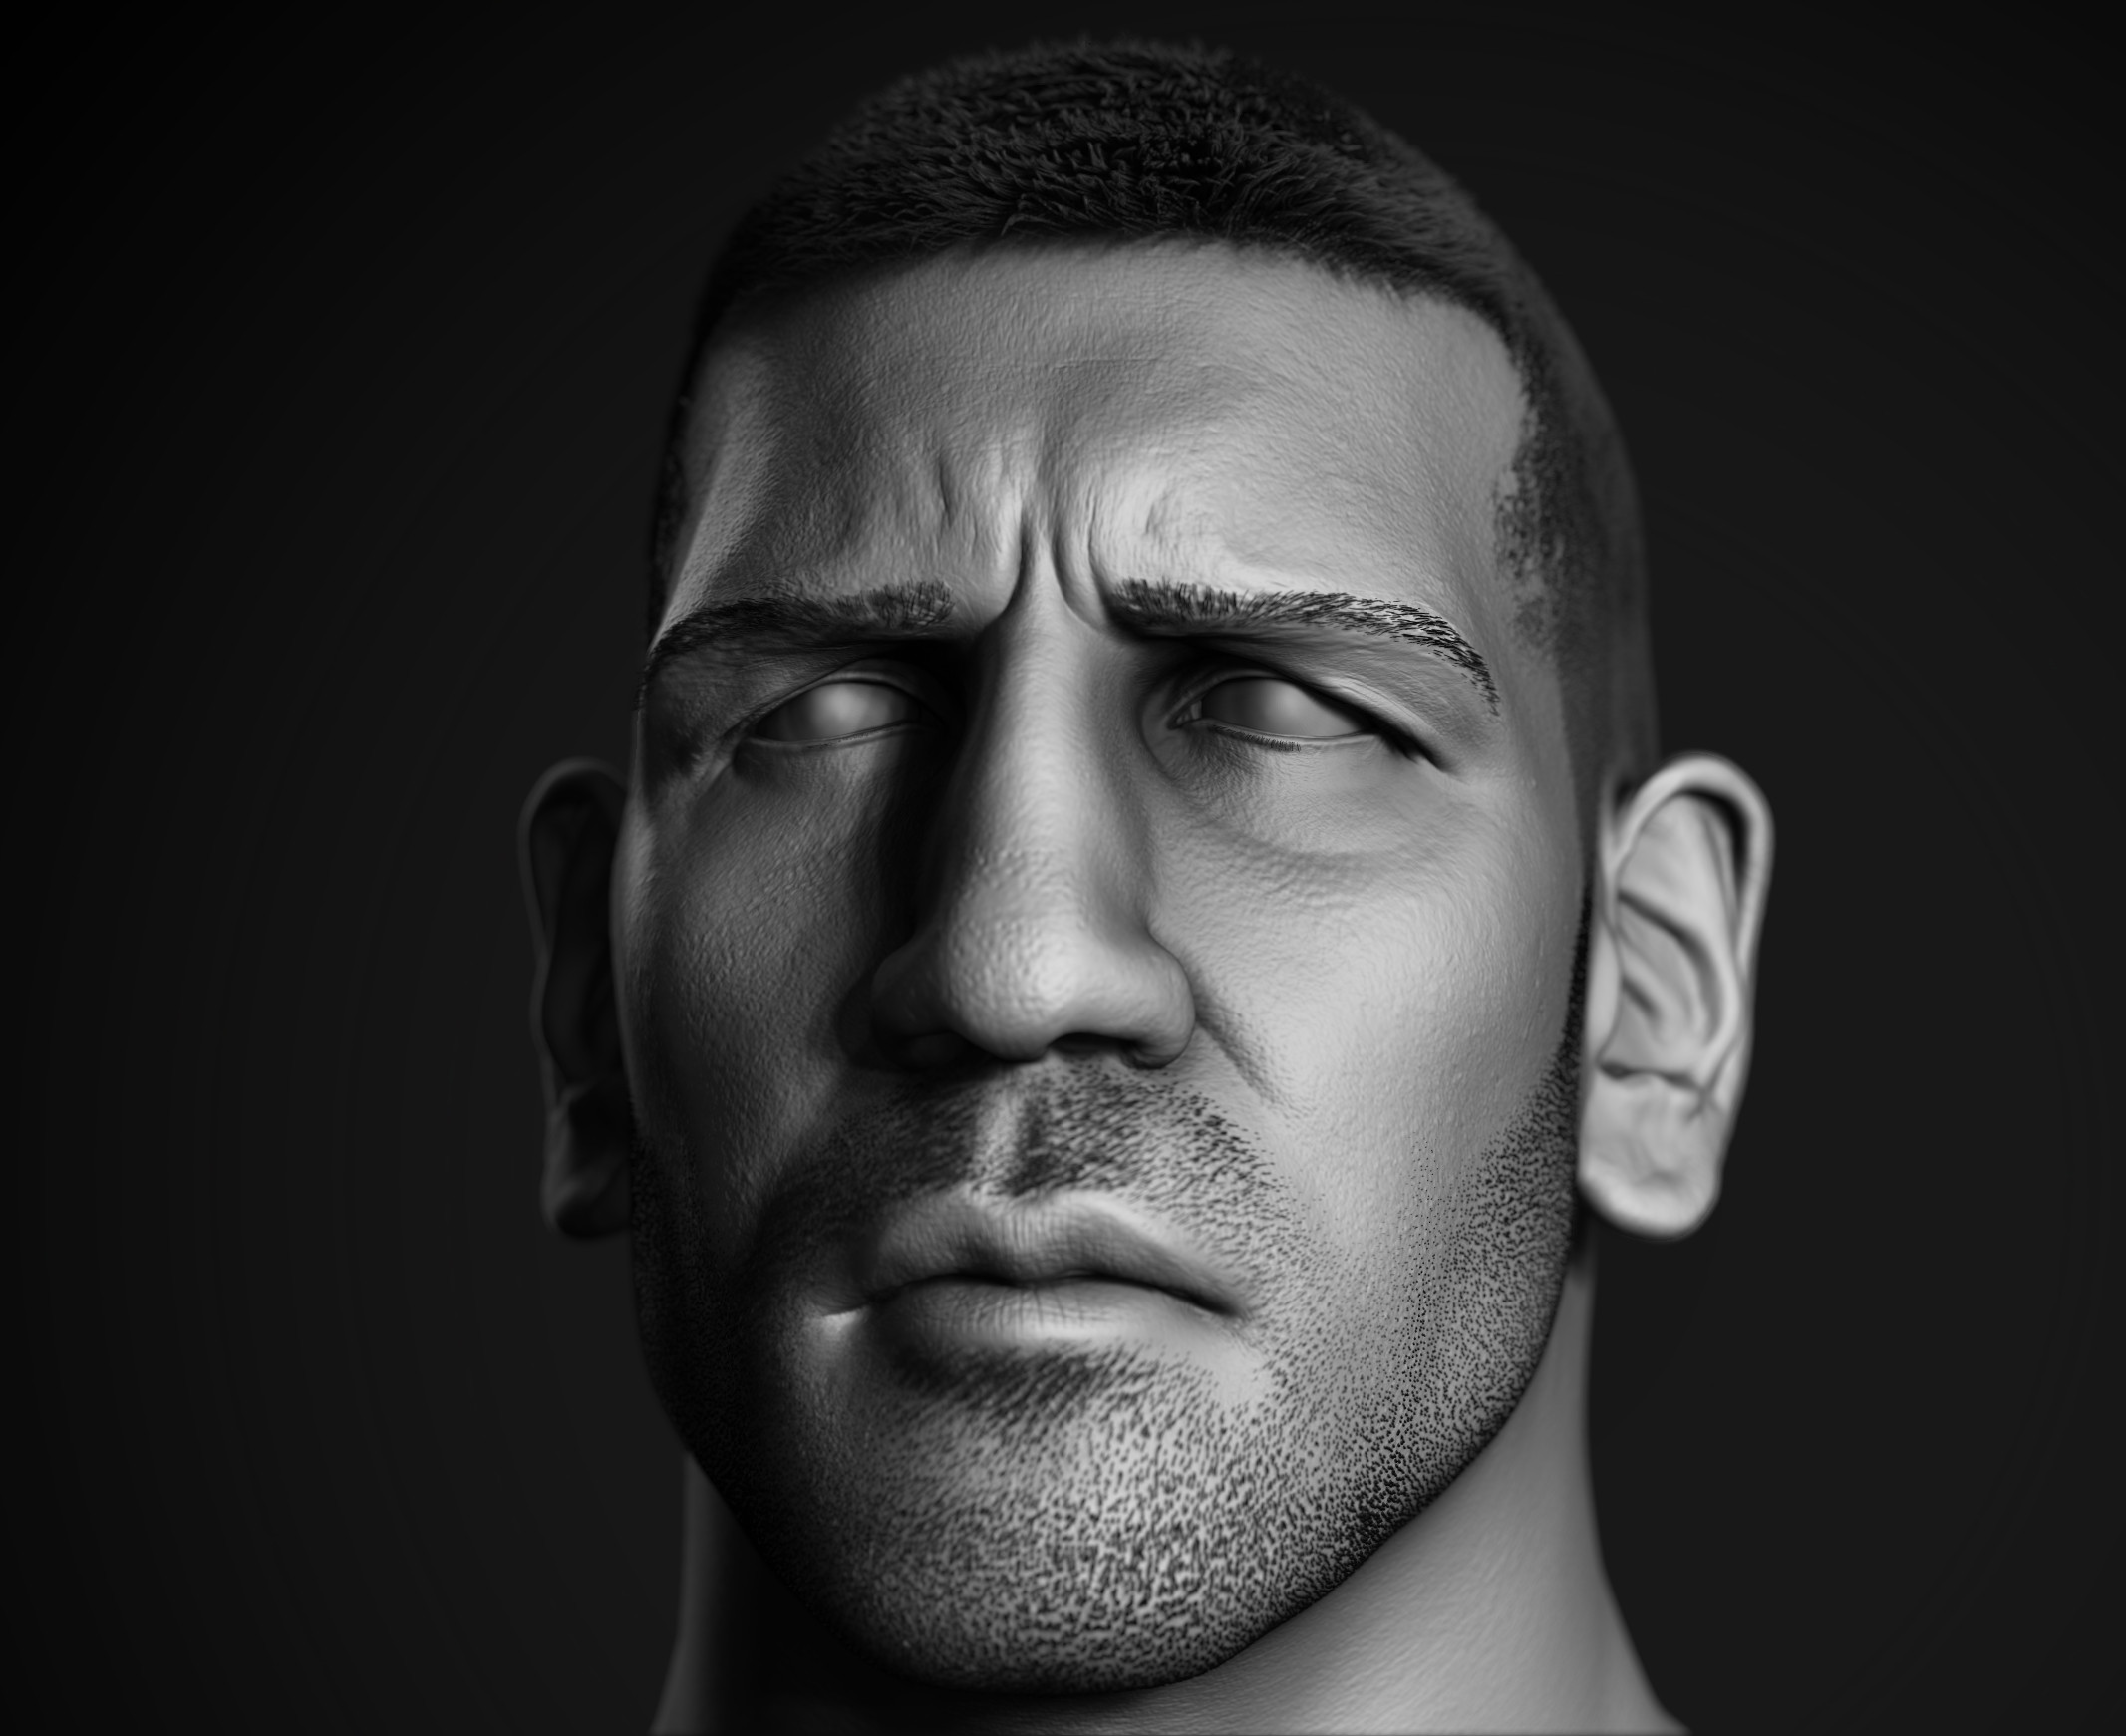 High res sculpt of the face